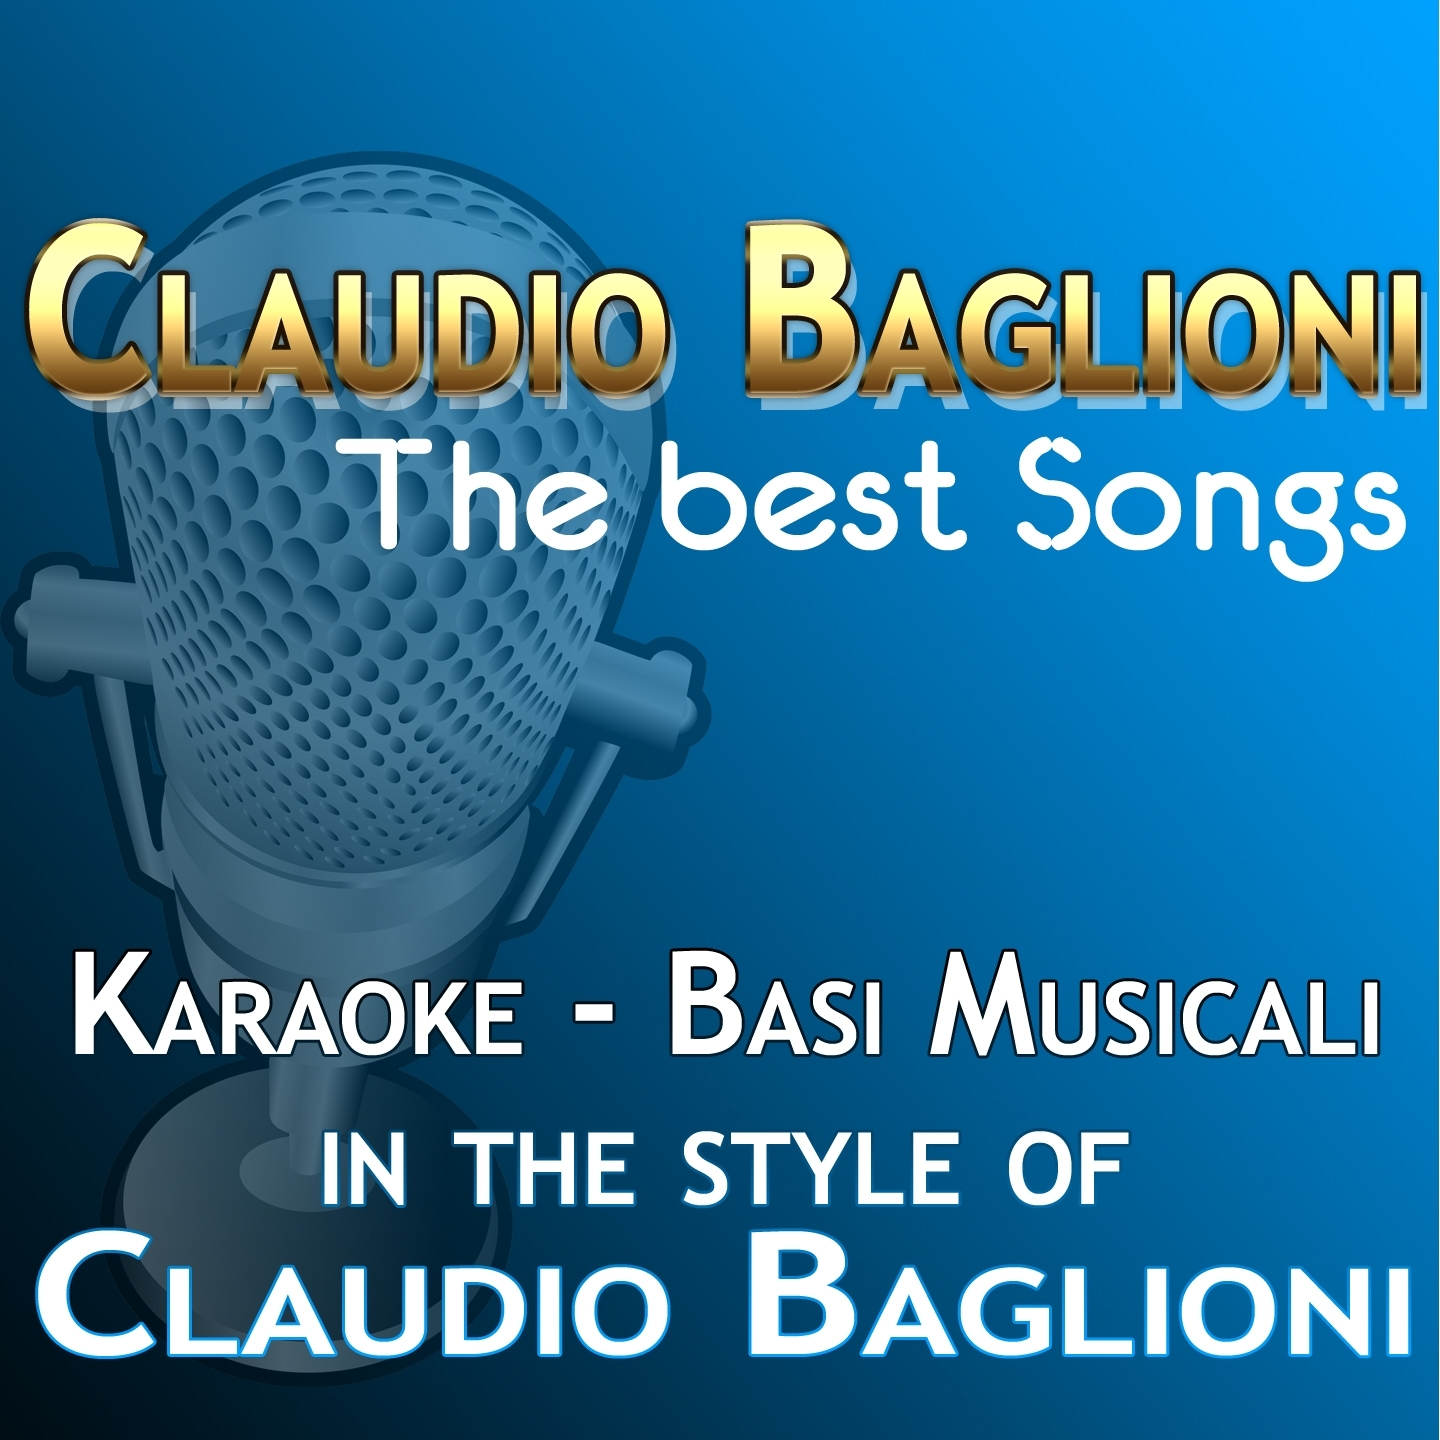 Claudio Baglioni: The Best Songs